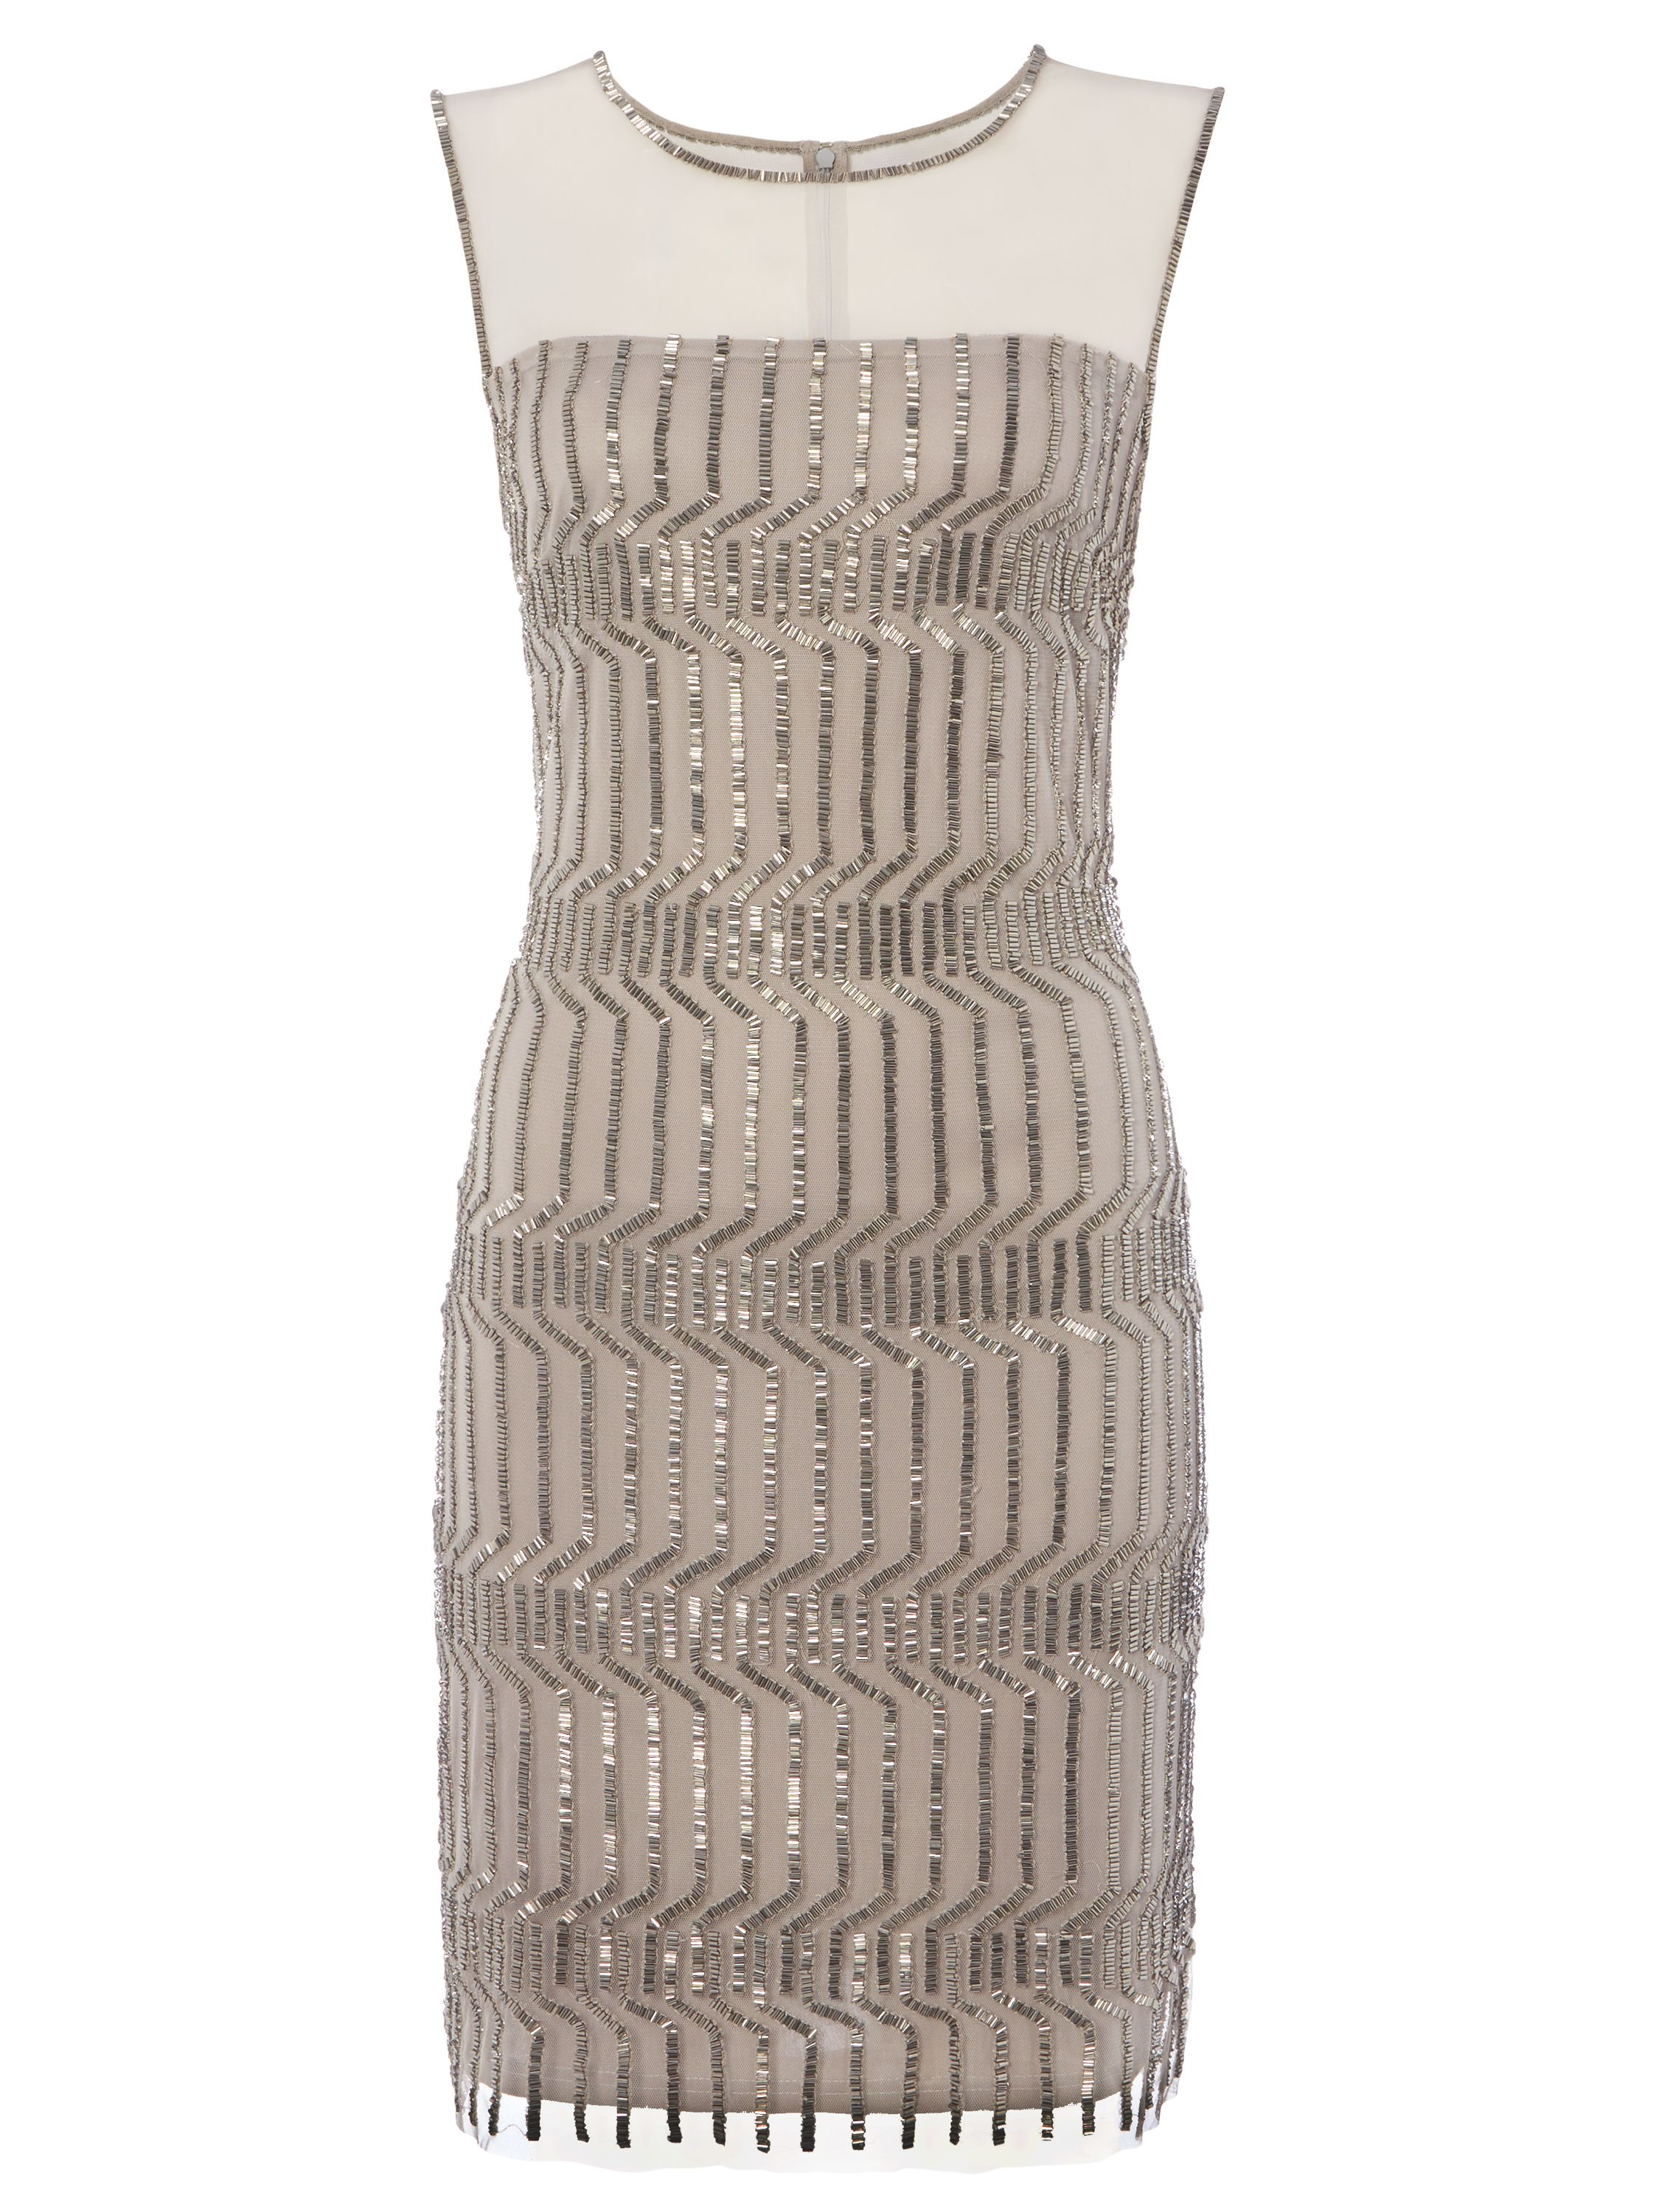 RAISHMA Geometric Dress, Silver